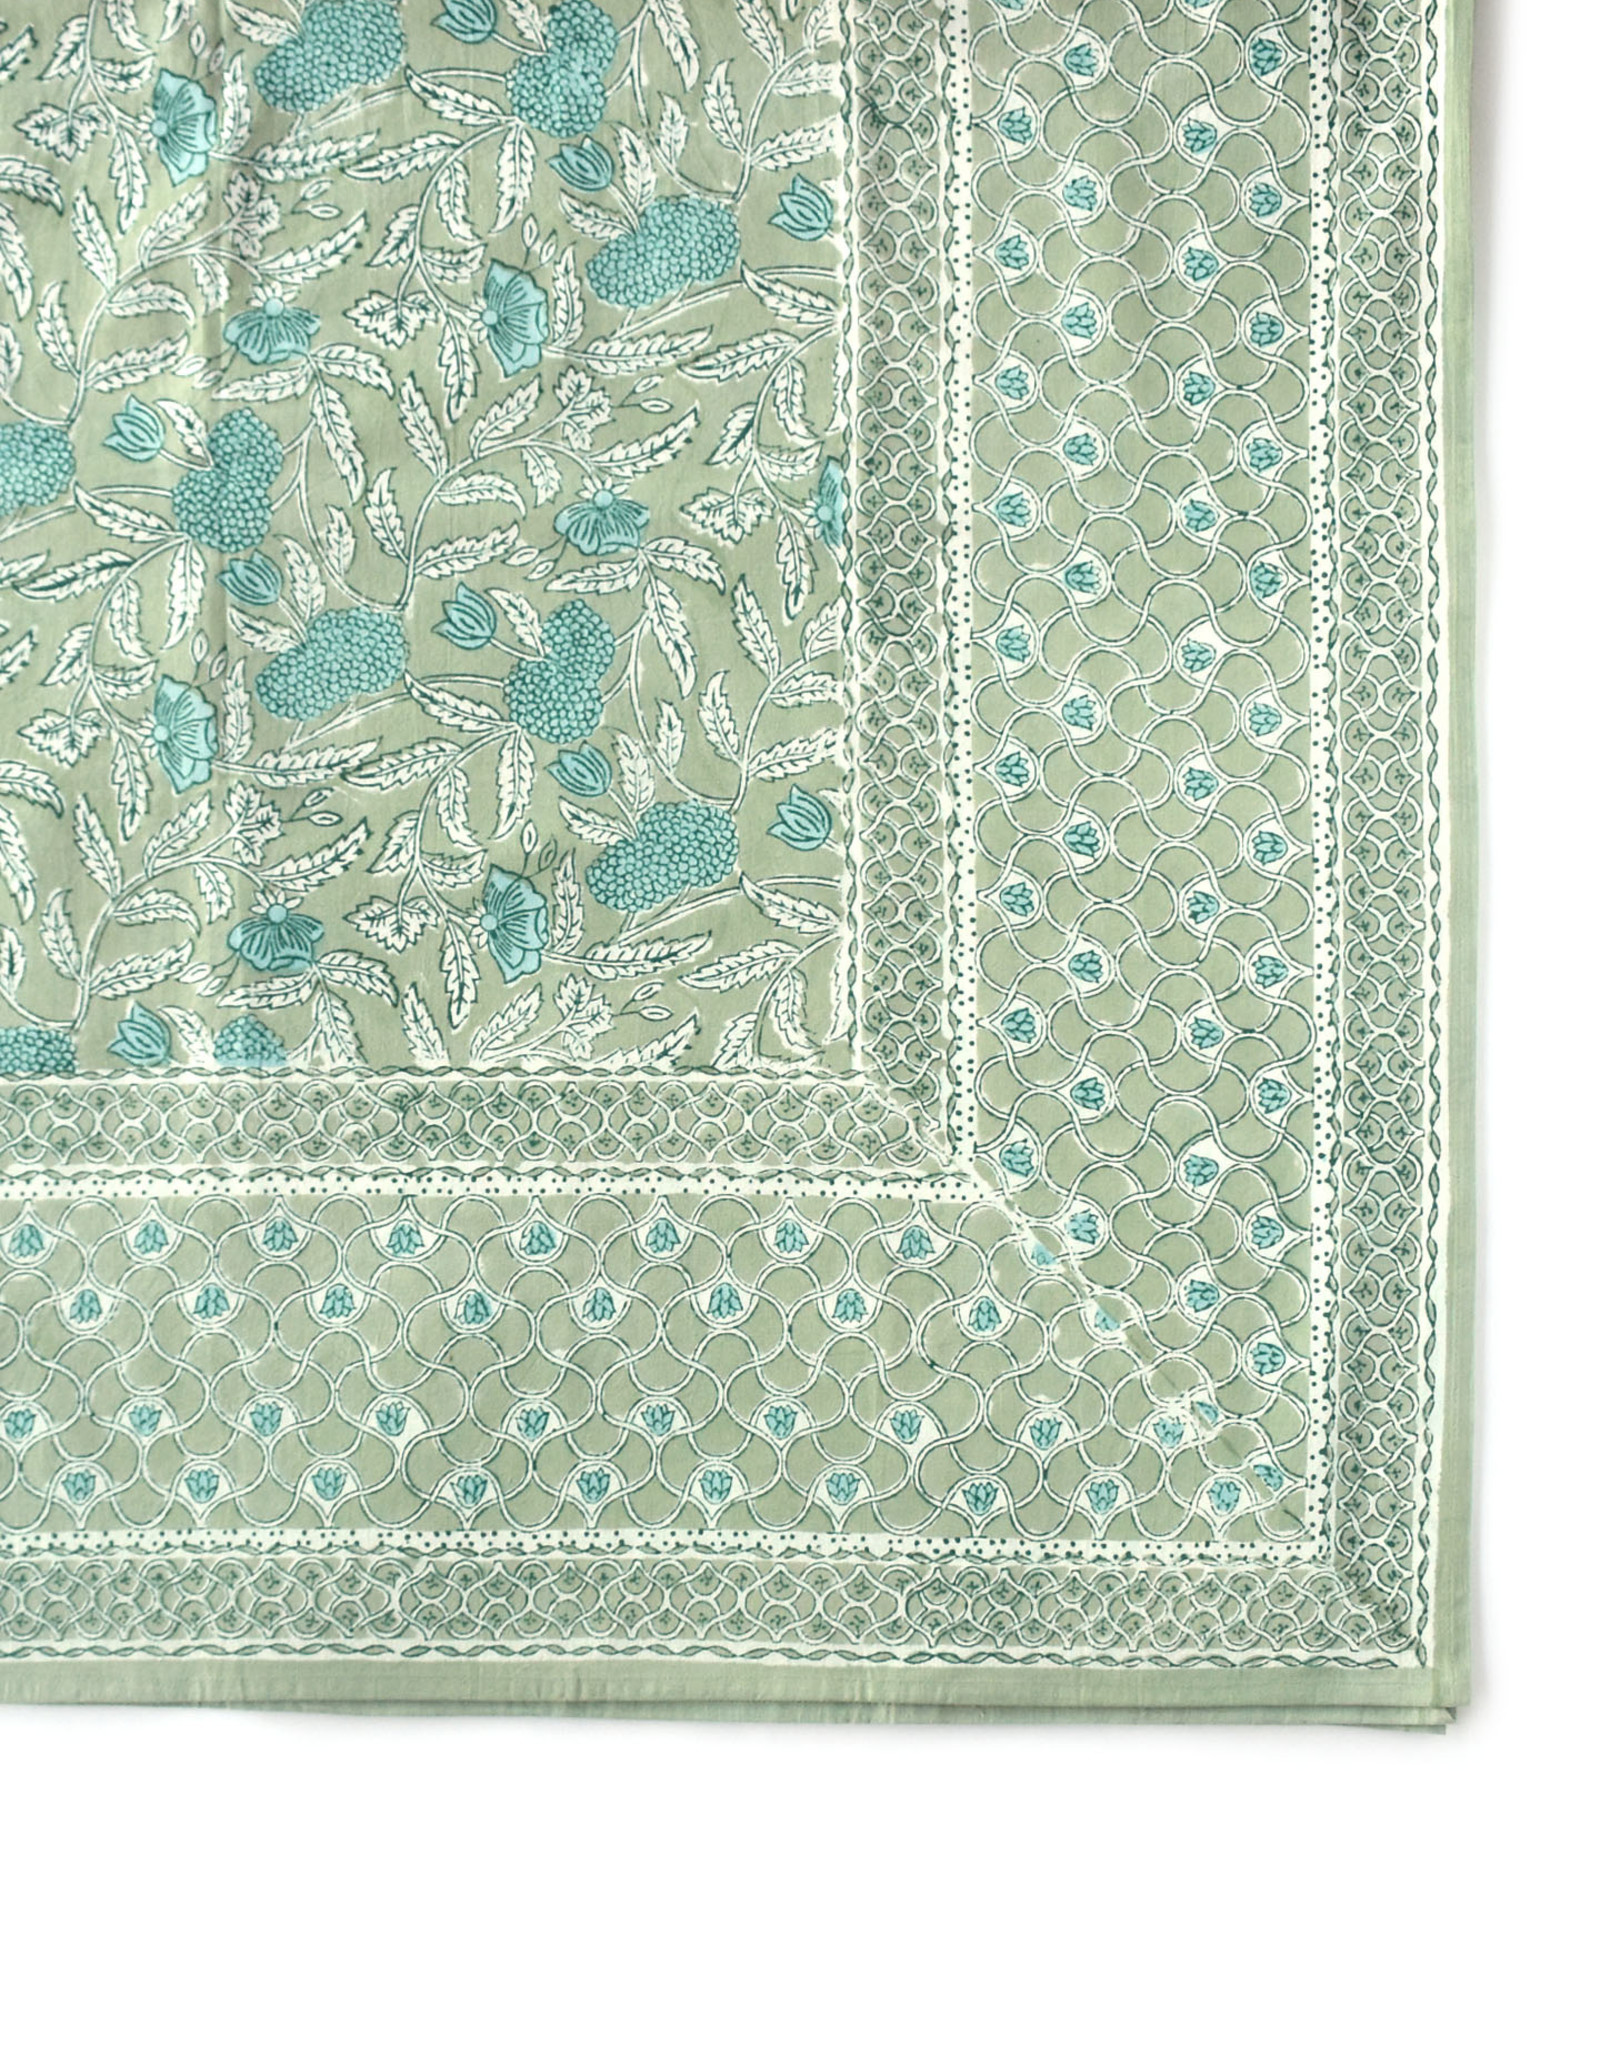 Jallore Sage Tablecloth (60x60)